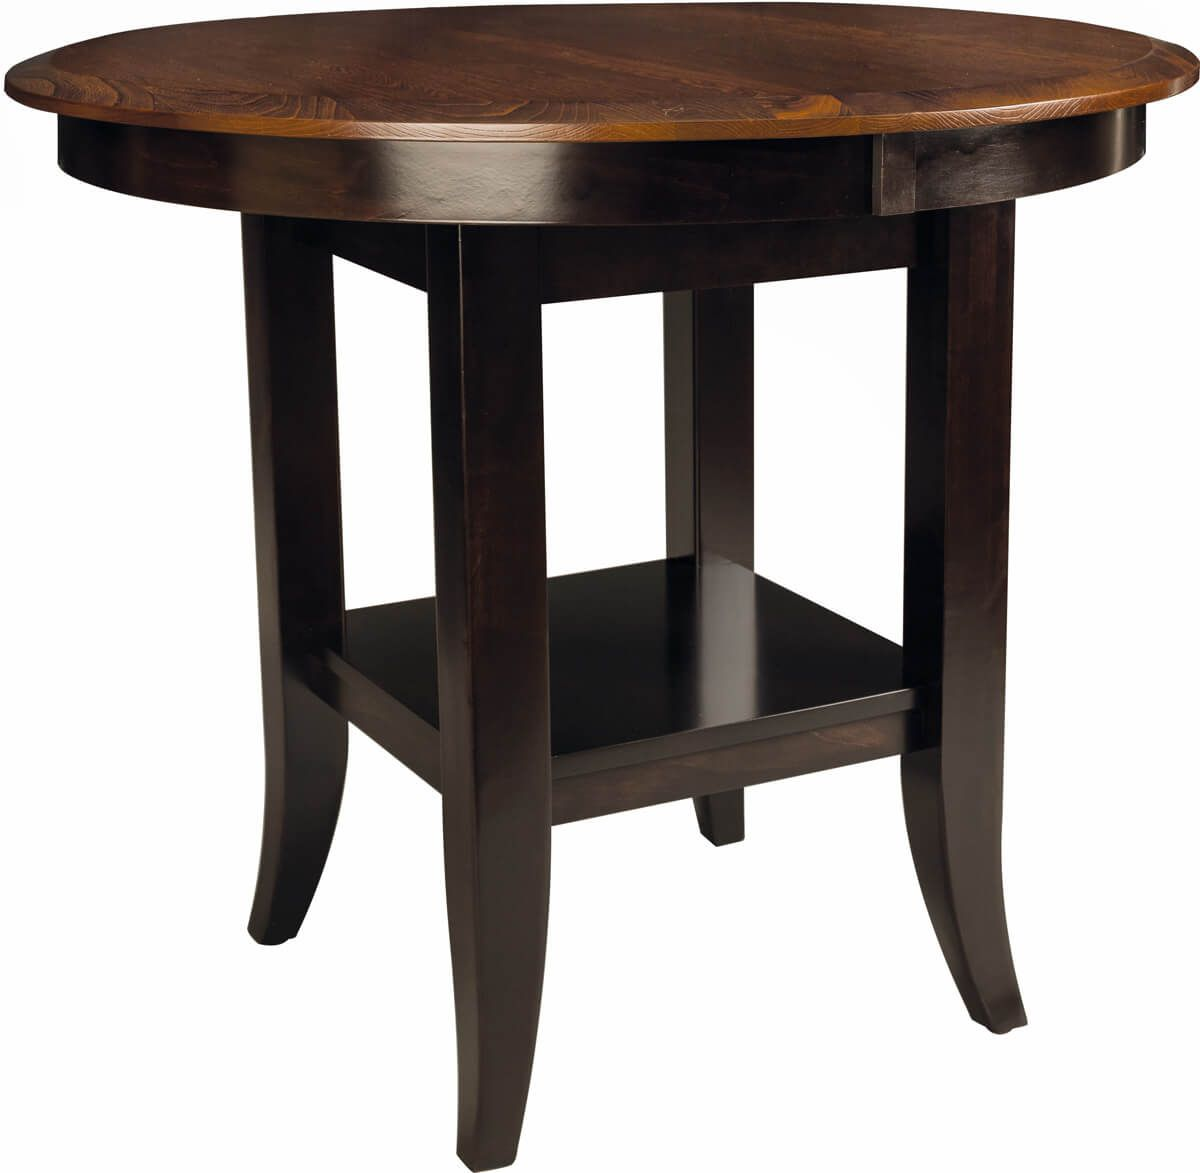 Aragon Bistro Table with round top